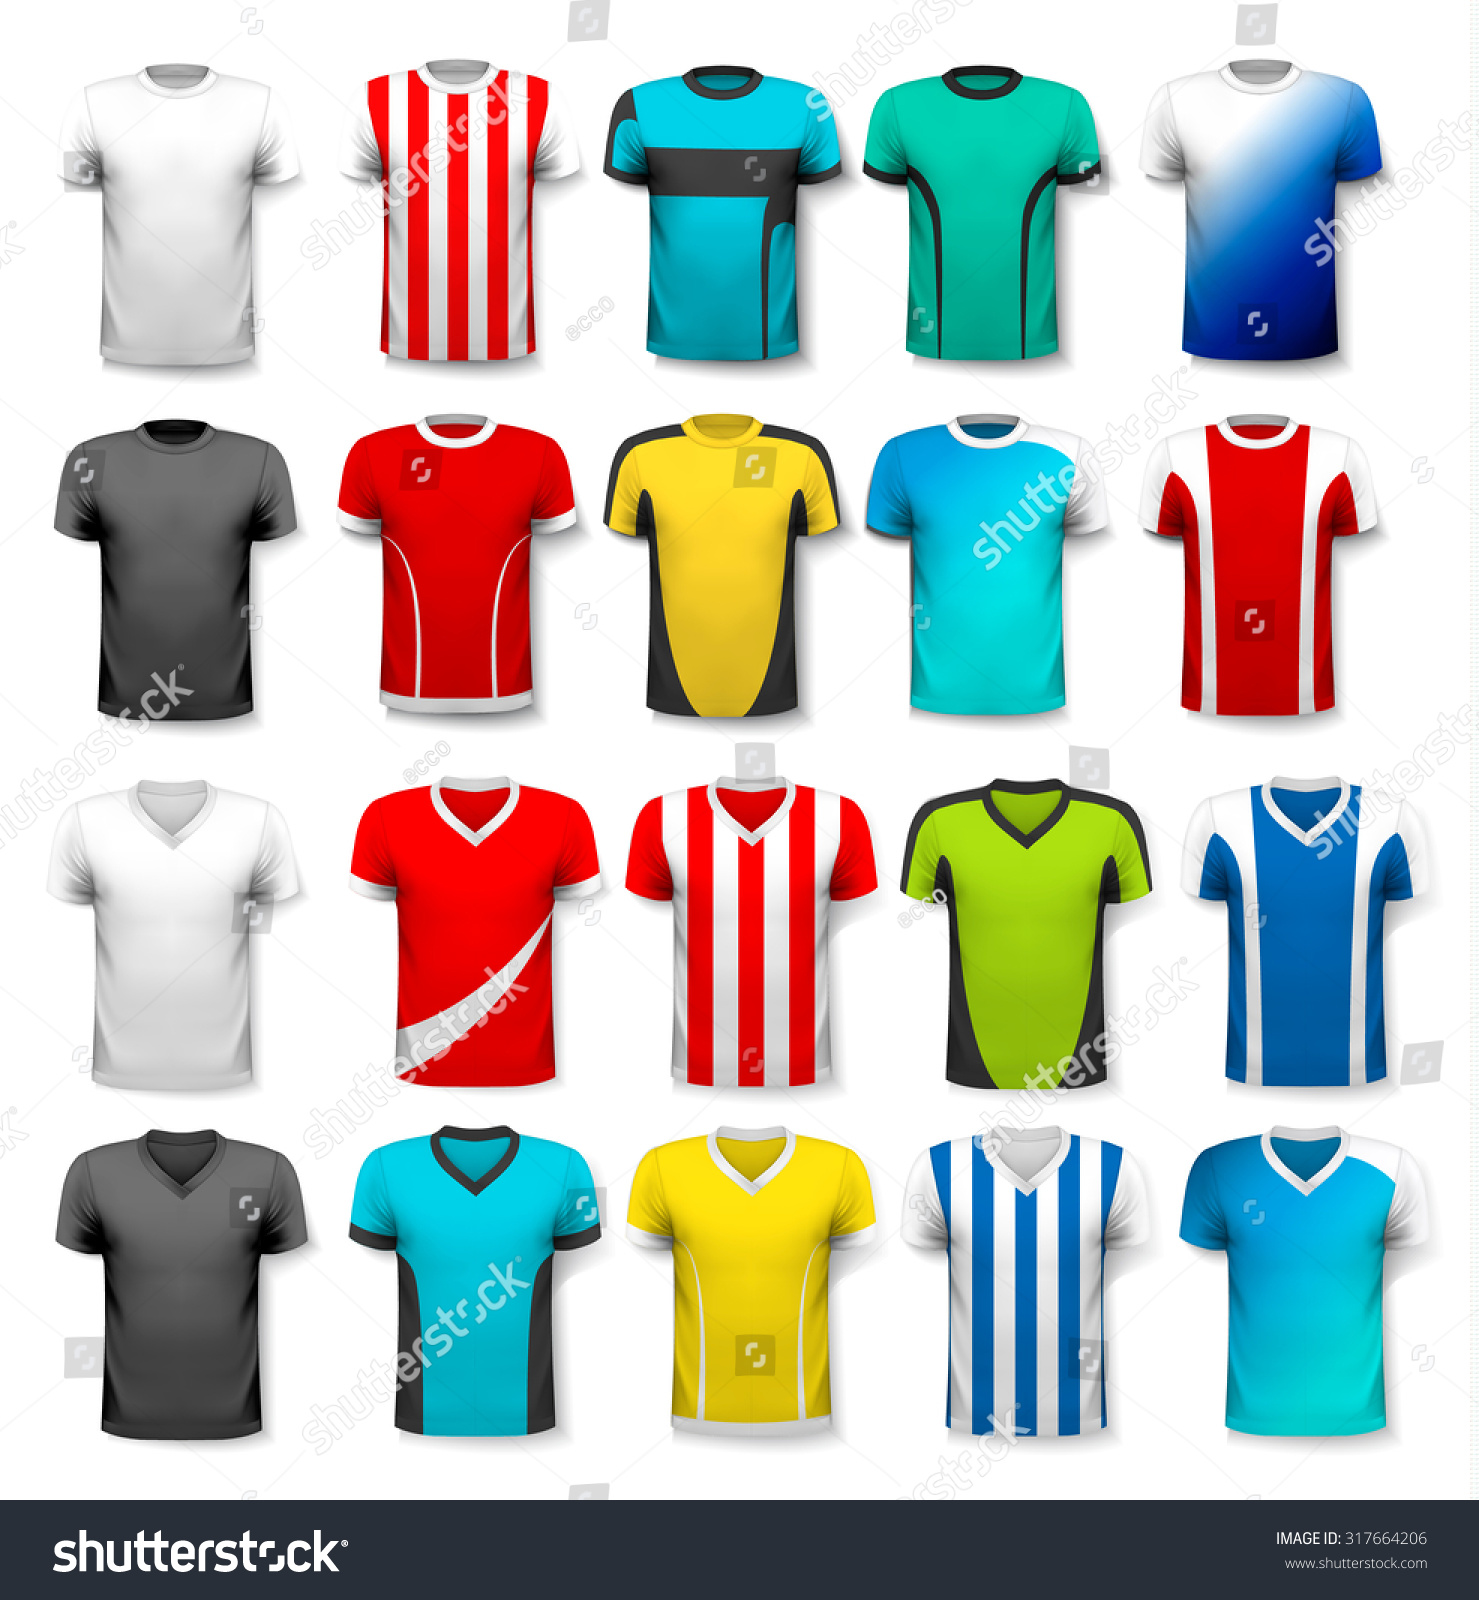 Welcome World League Of Beauty And Fashion Official Web: Collection Various Soccer Jerseys Tshirt Transparent Stock